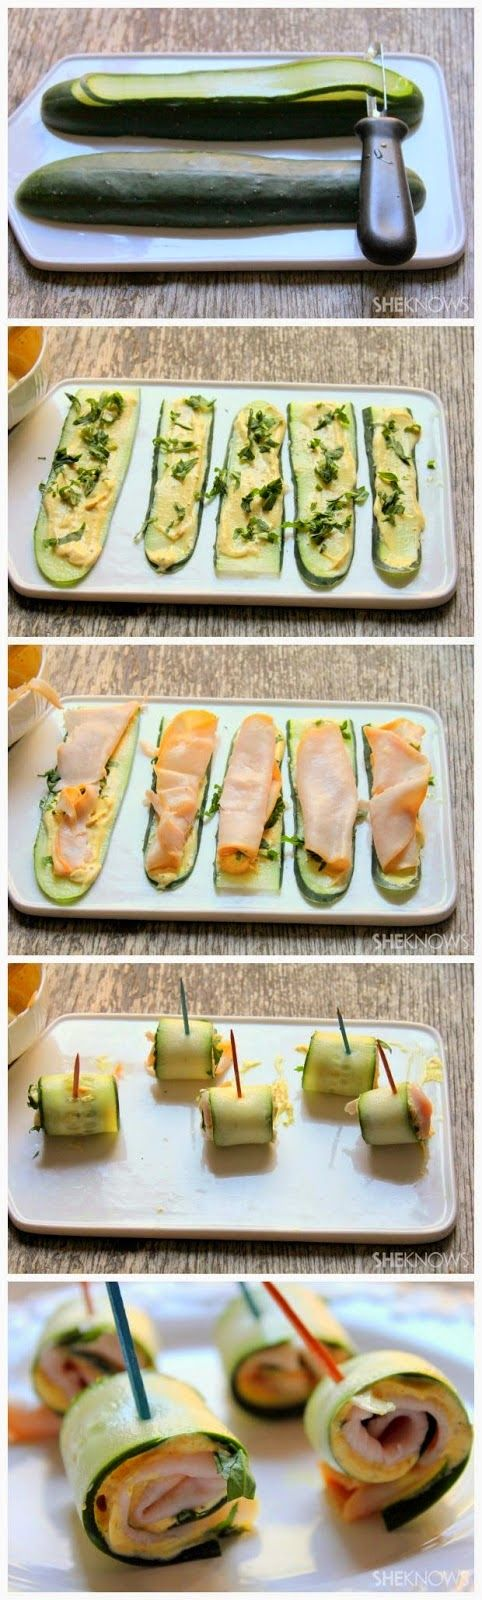 Cucumber roll-ups with Greek yogurt (could do hummus instead of yogurt mixture)  cucumbers 1-1/2  cups low-fat Greek yogurt 1  tablespoon curry powder 1 tablespoon lime juice salt and pepper 1 tablespoons herbs, such as cilantro, if desired ham or turkey if desired